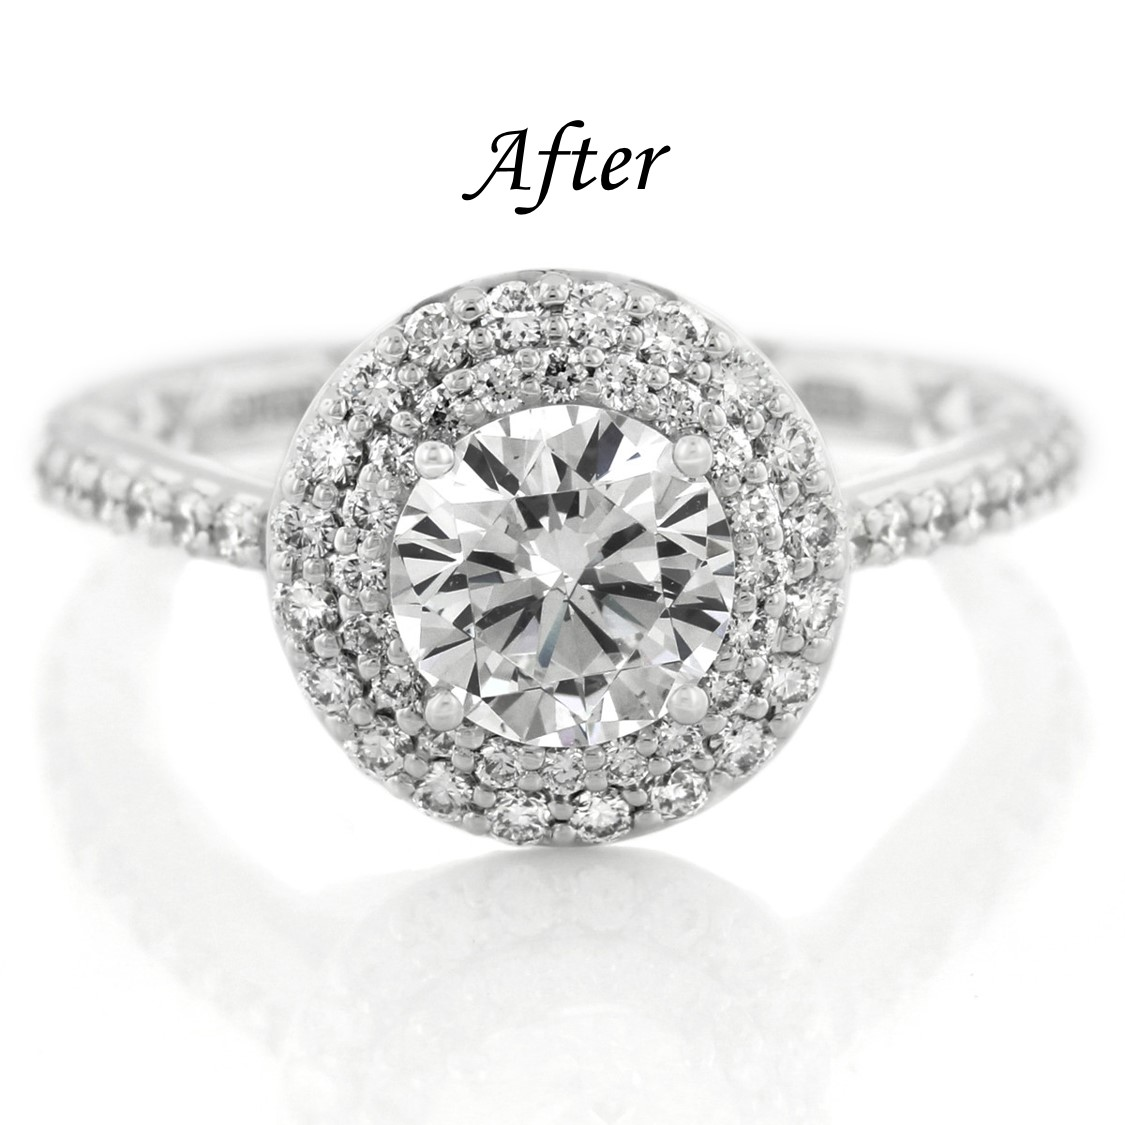 6 Ways To Reset Your Solitaire Engagement Ring - Add A Halo